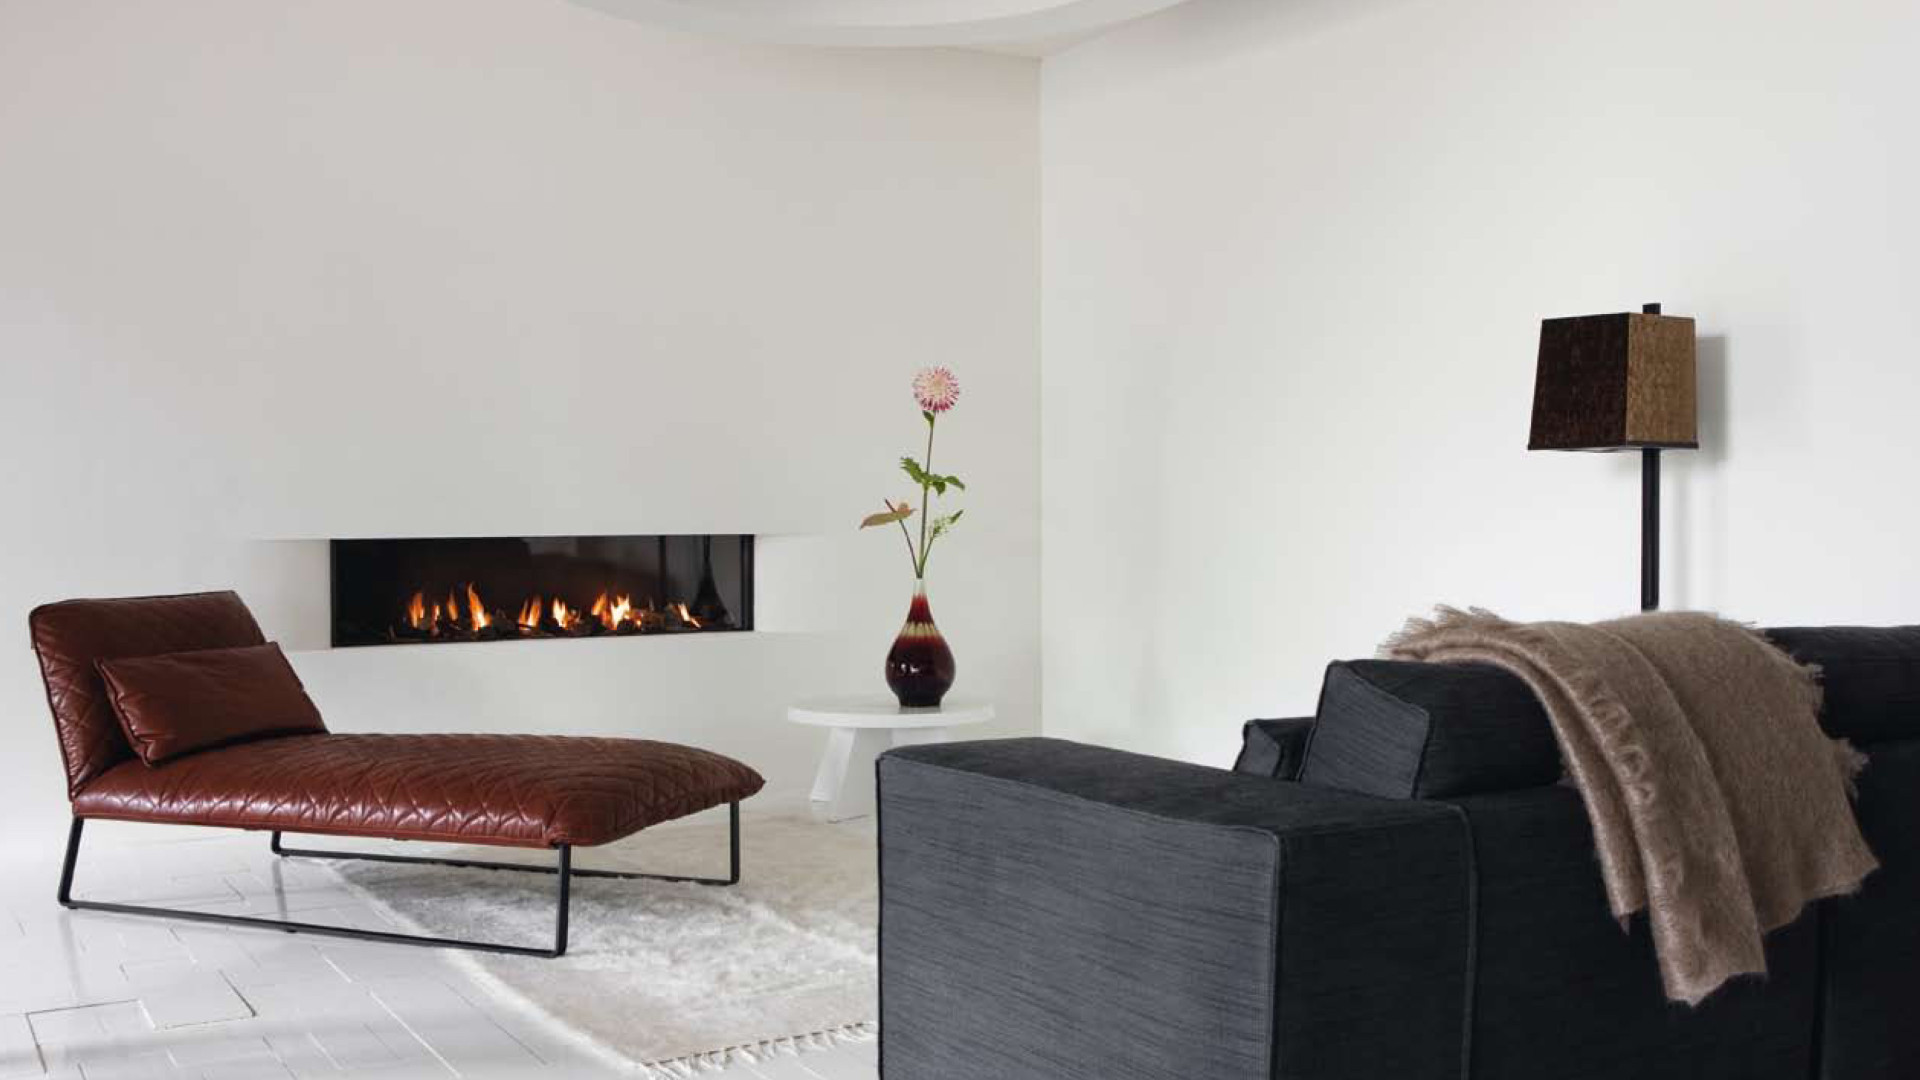 Types of Ethanol Contemporary Fireplaces